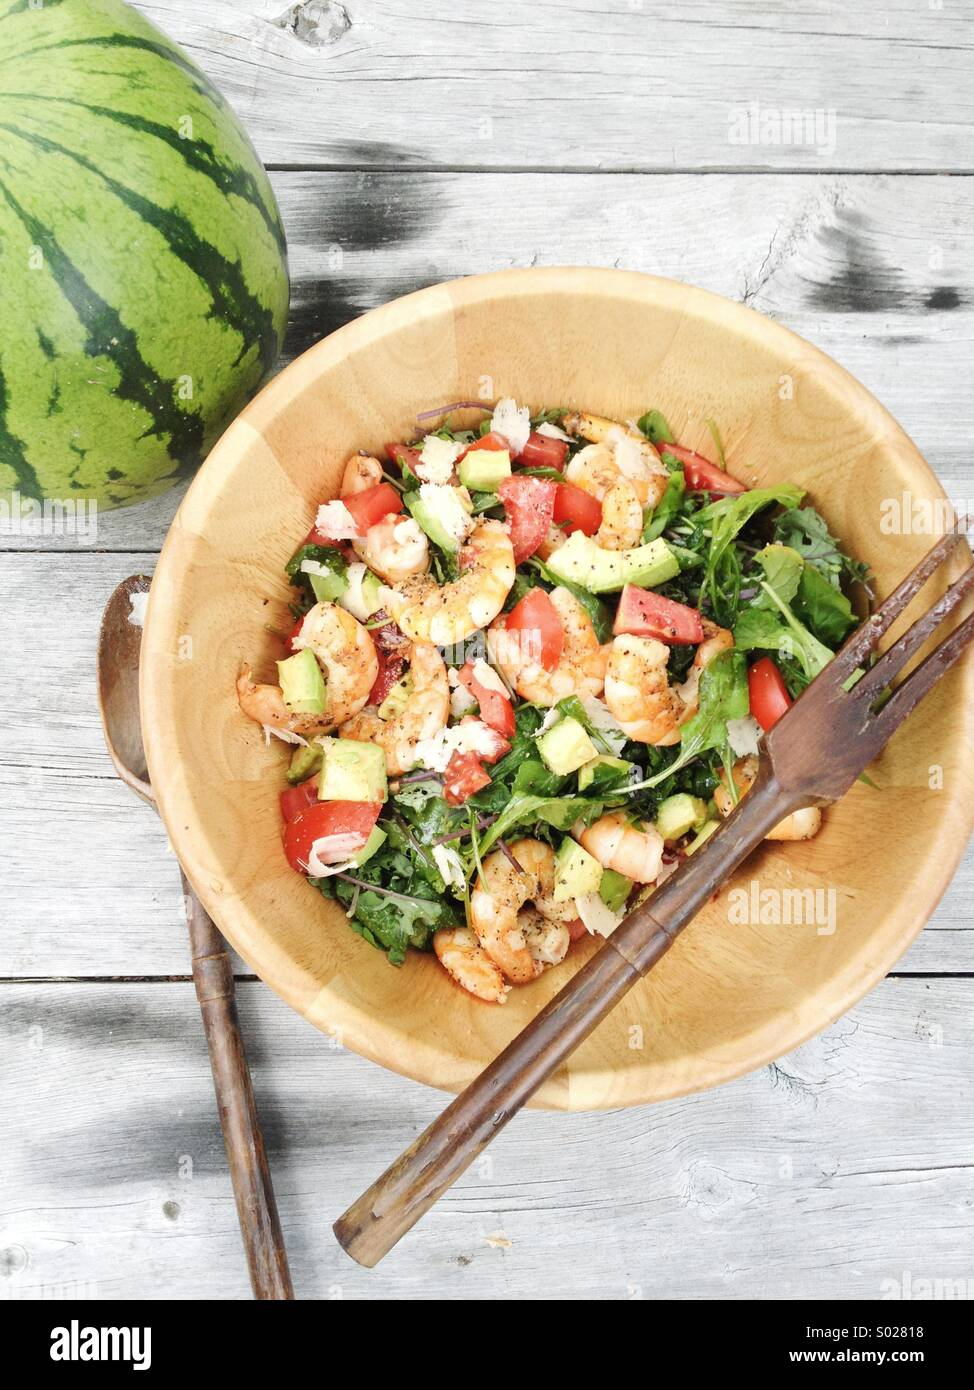 Summer salad in Cape Cod. - Stock Image